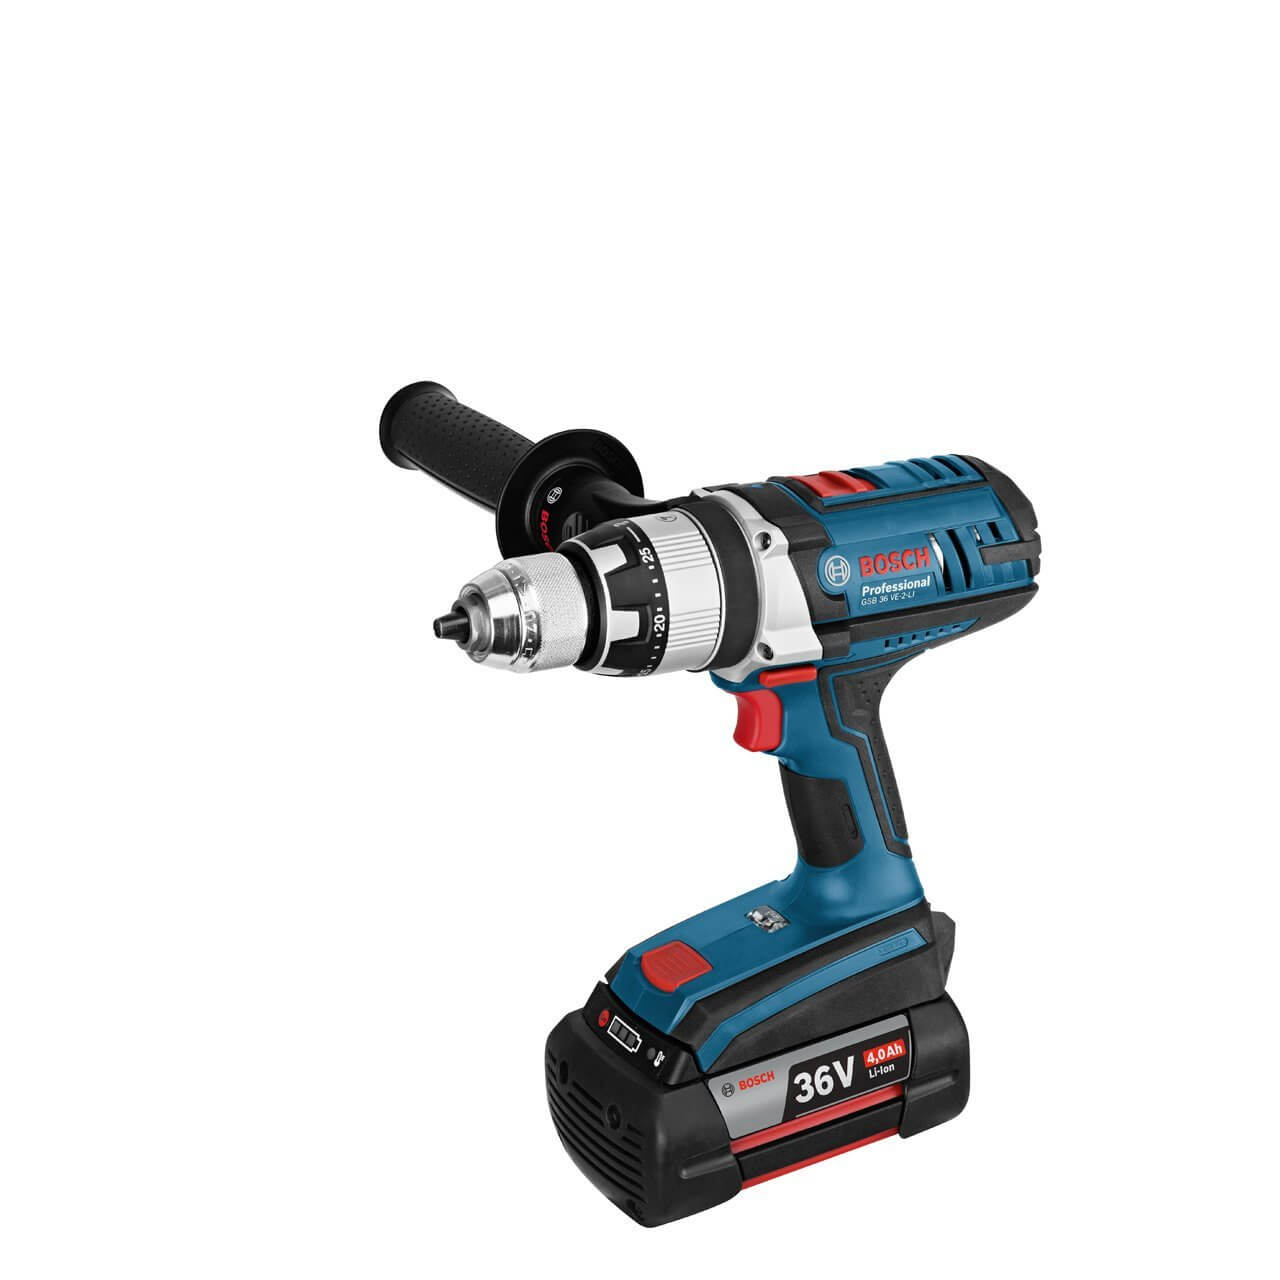 bosch-gsb-36-ve-li-1 Avis test Perceuse Einhell TH CD 18 2i